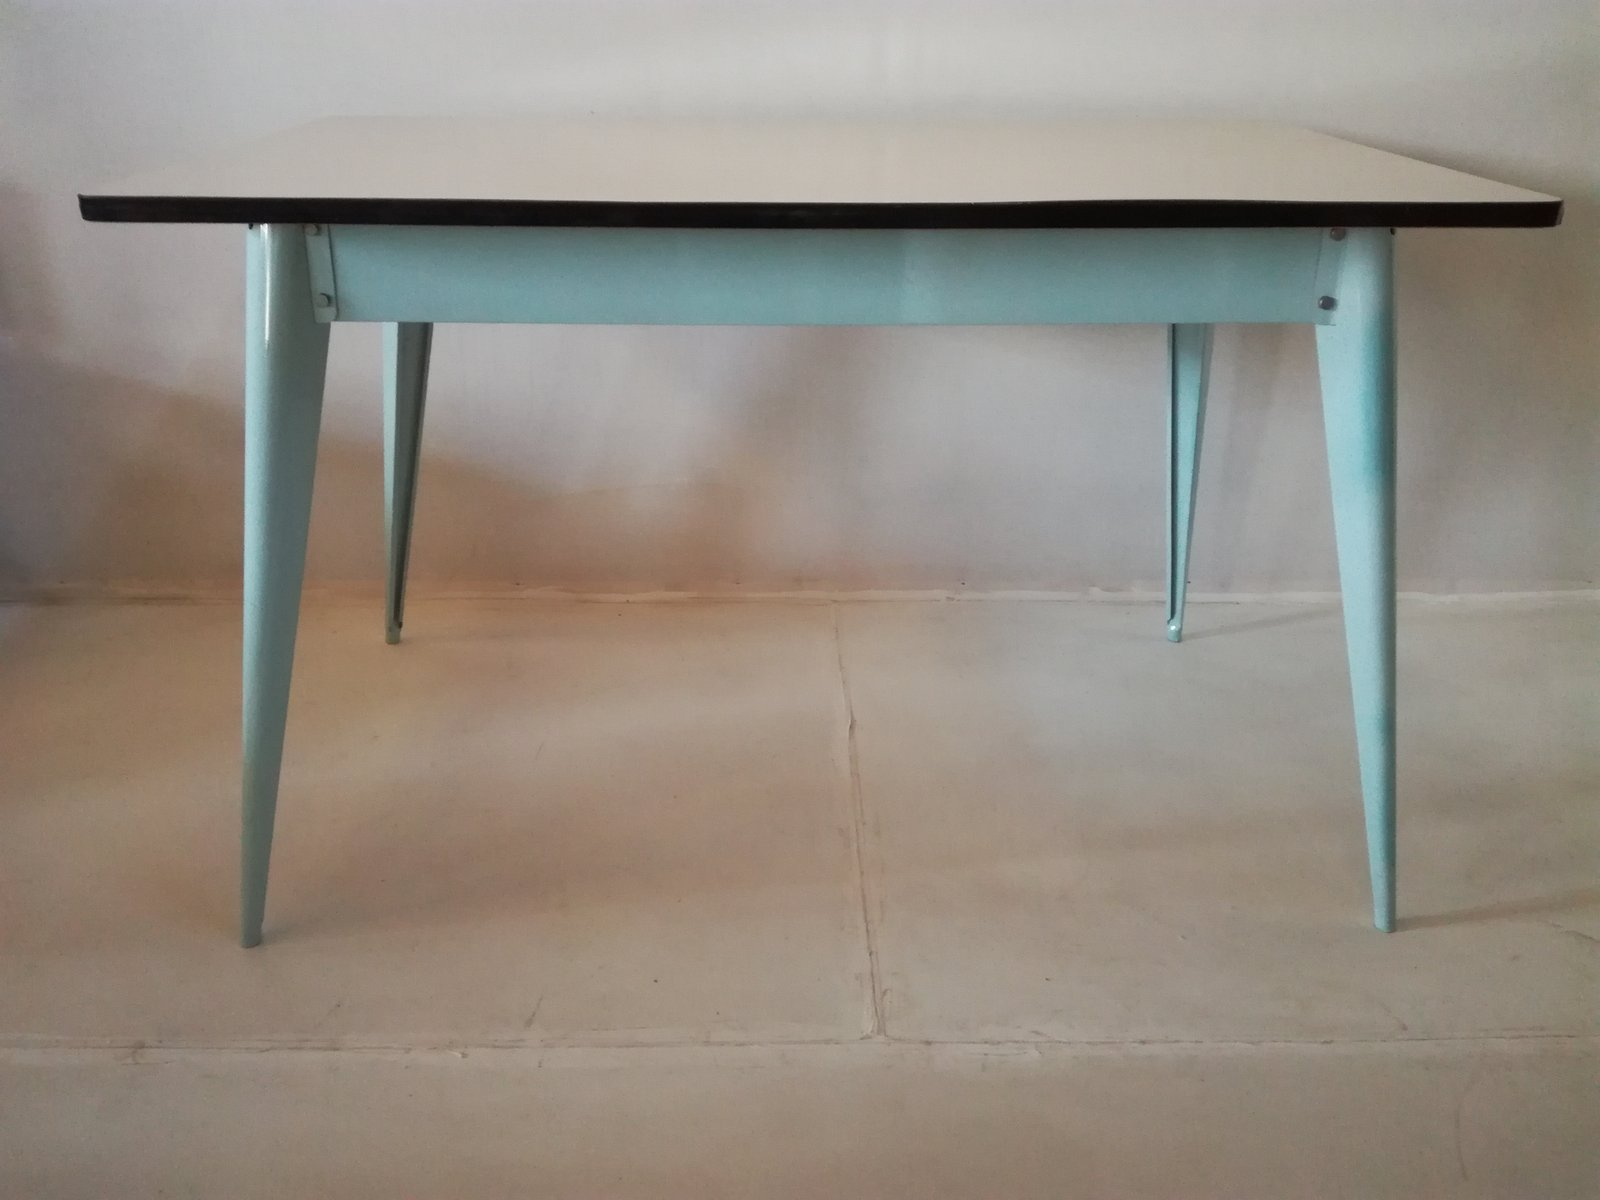 Xavier pauchard french industrial dining room furniture Pauchard Pair Vintage Dining Table By Xavier Pauchard For Tolix Design Within Reach Vintage Dining Table By Xavier Pauchard For Tolix For Sale At Pamono